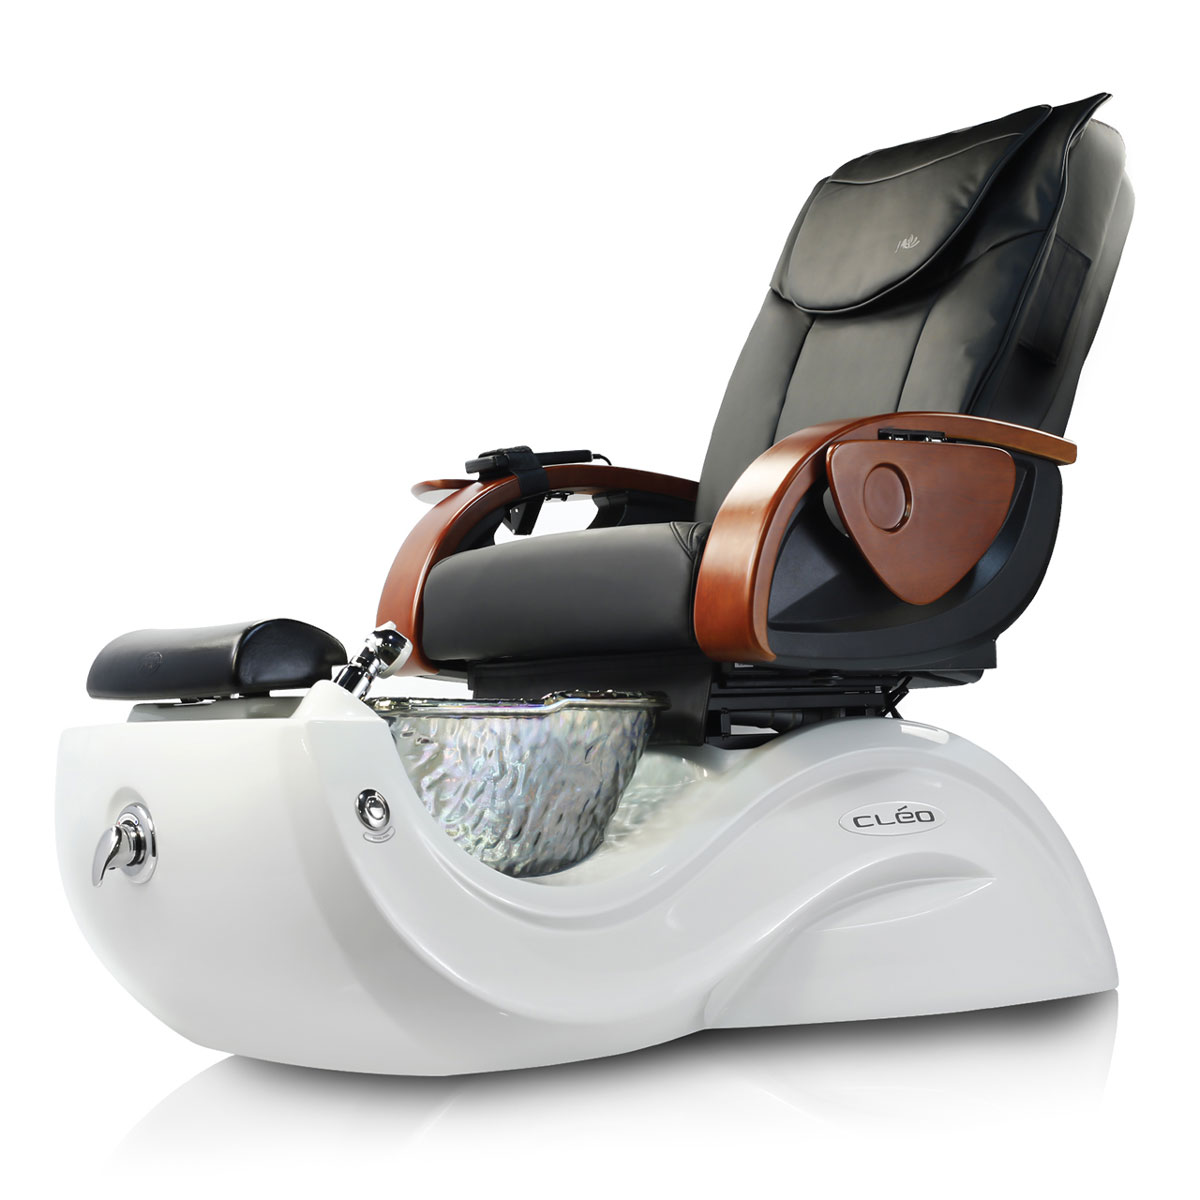 Cleo GX  Pipeless Spa Pedicure Chair w/ Venting Option alternative product image 1